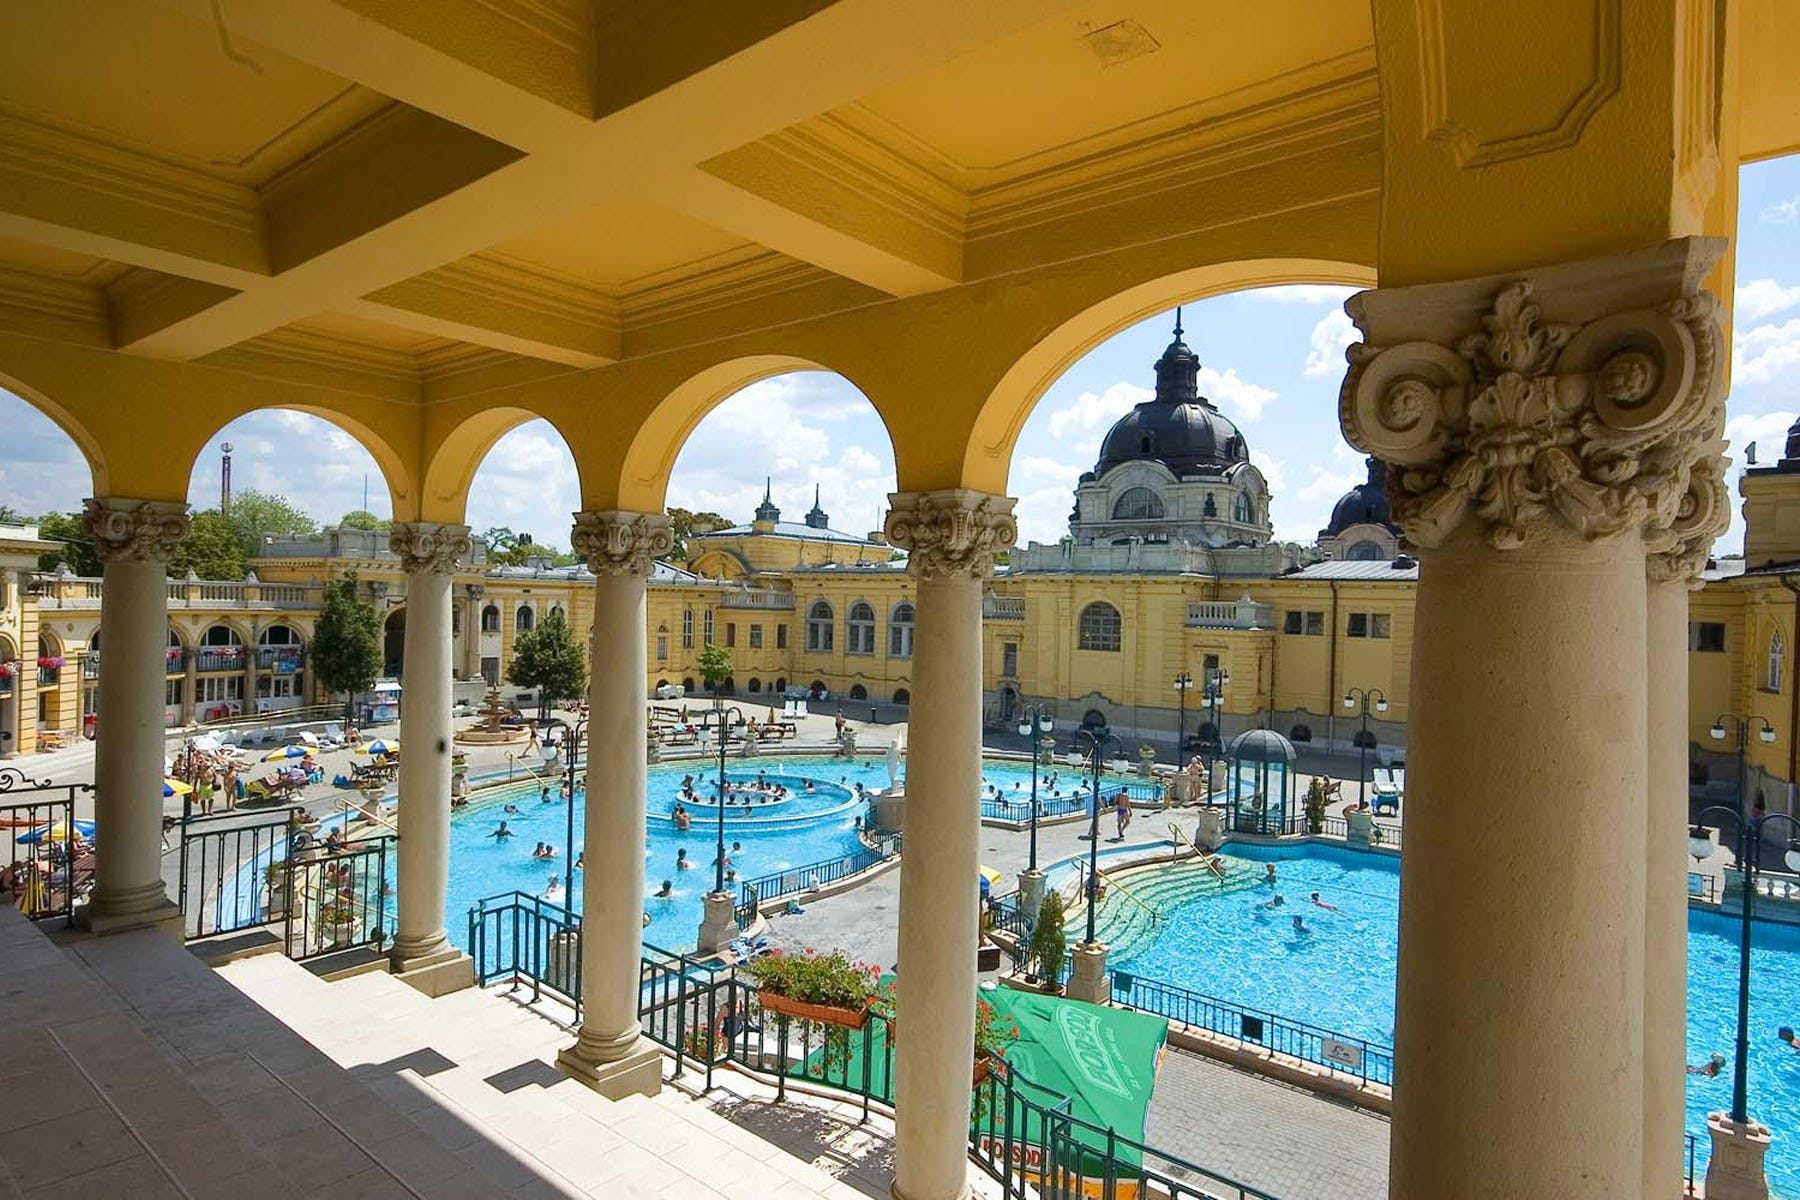 Szechenyi Budapest Spa gift package with skip-the-line entry